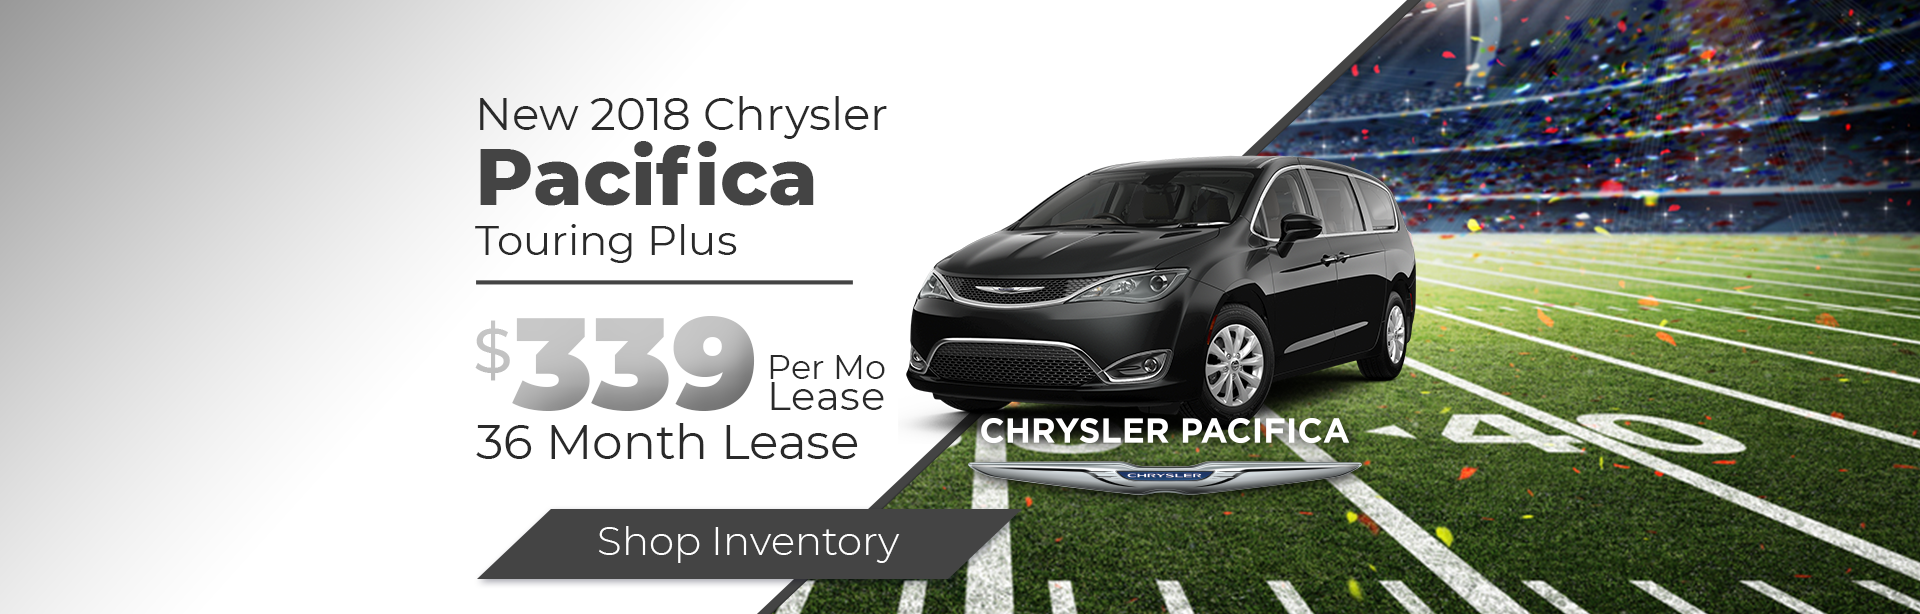 2018 Chrysler Pacifica Best Deal Near Lafayette, Indiana